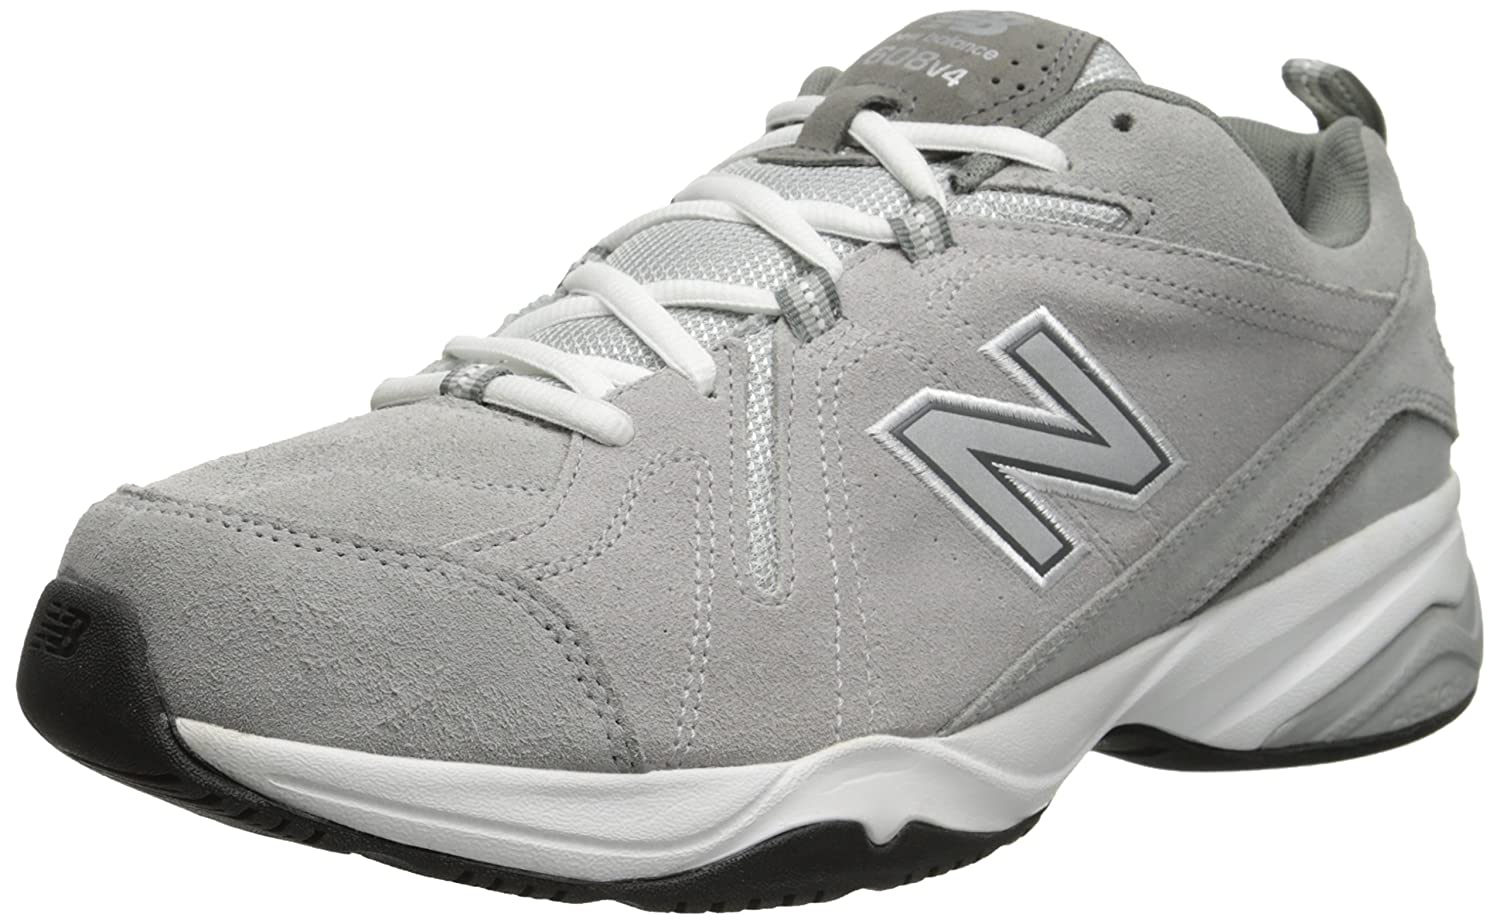 激安特価  New Balance Men's Mx608 New Ankle-High Ankle-High Suede Running 4E Shoe B00LNOYE4K グレー 10.5 4E US 10.5 4E US|グレー, 川口町:3d151e99 --- svecha37.ru